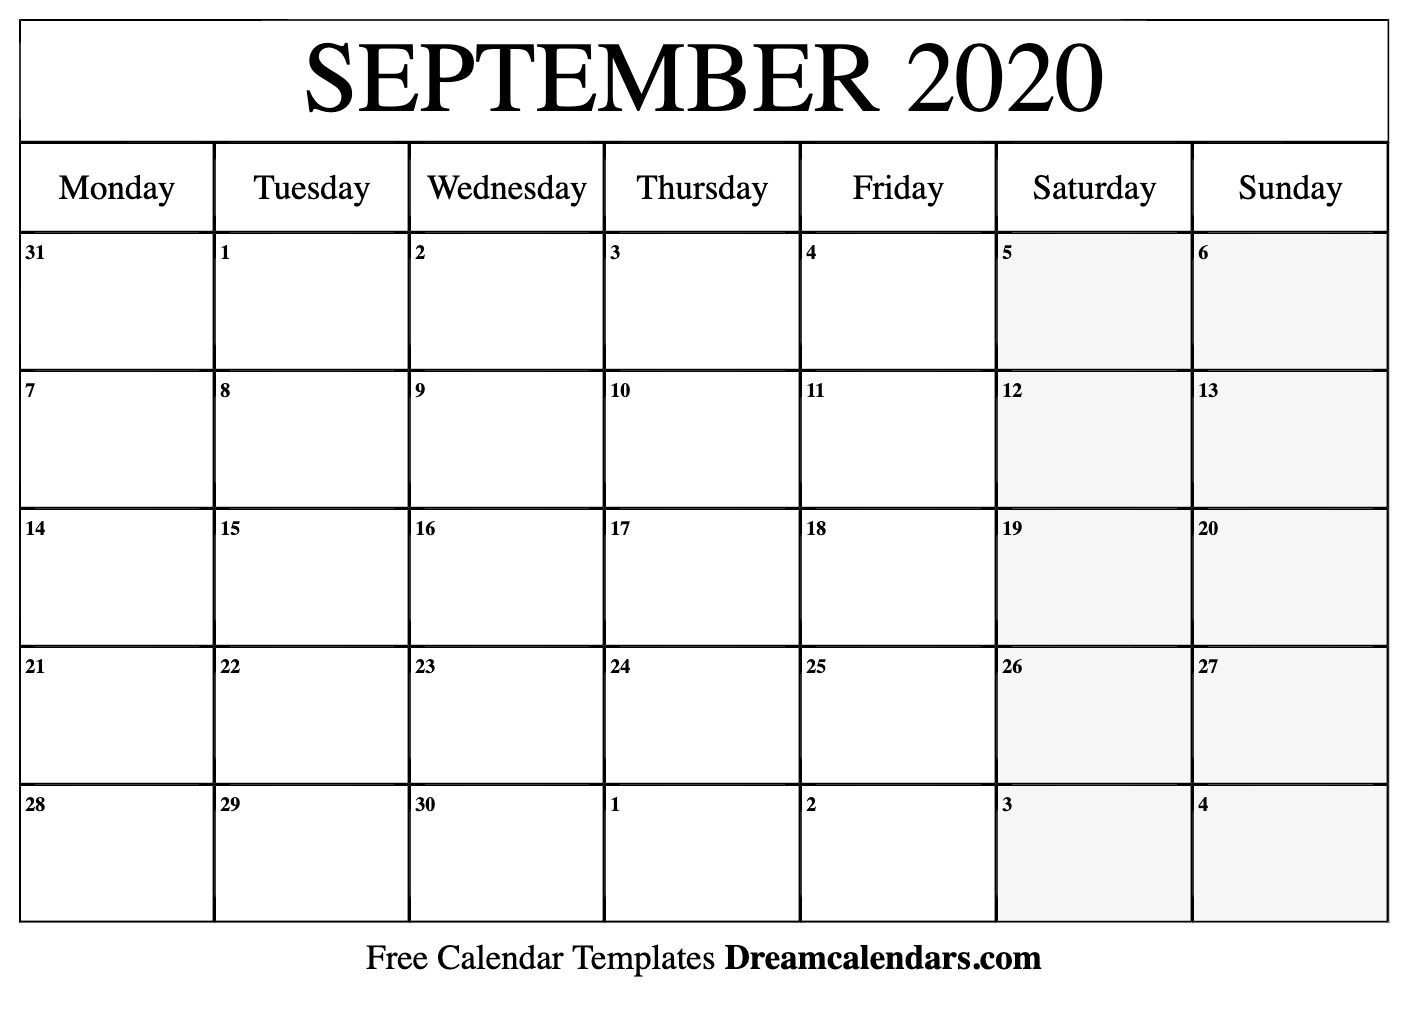 September 2020 Calendar Wallpapers - Top Free September 2020